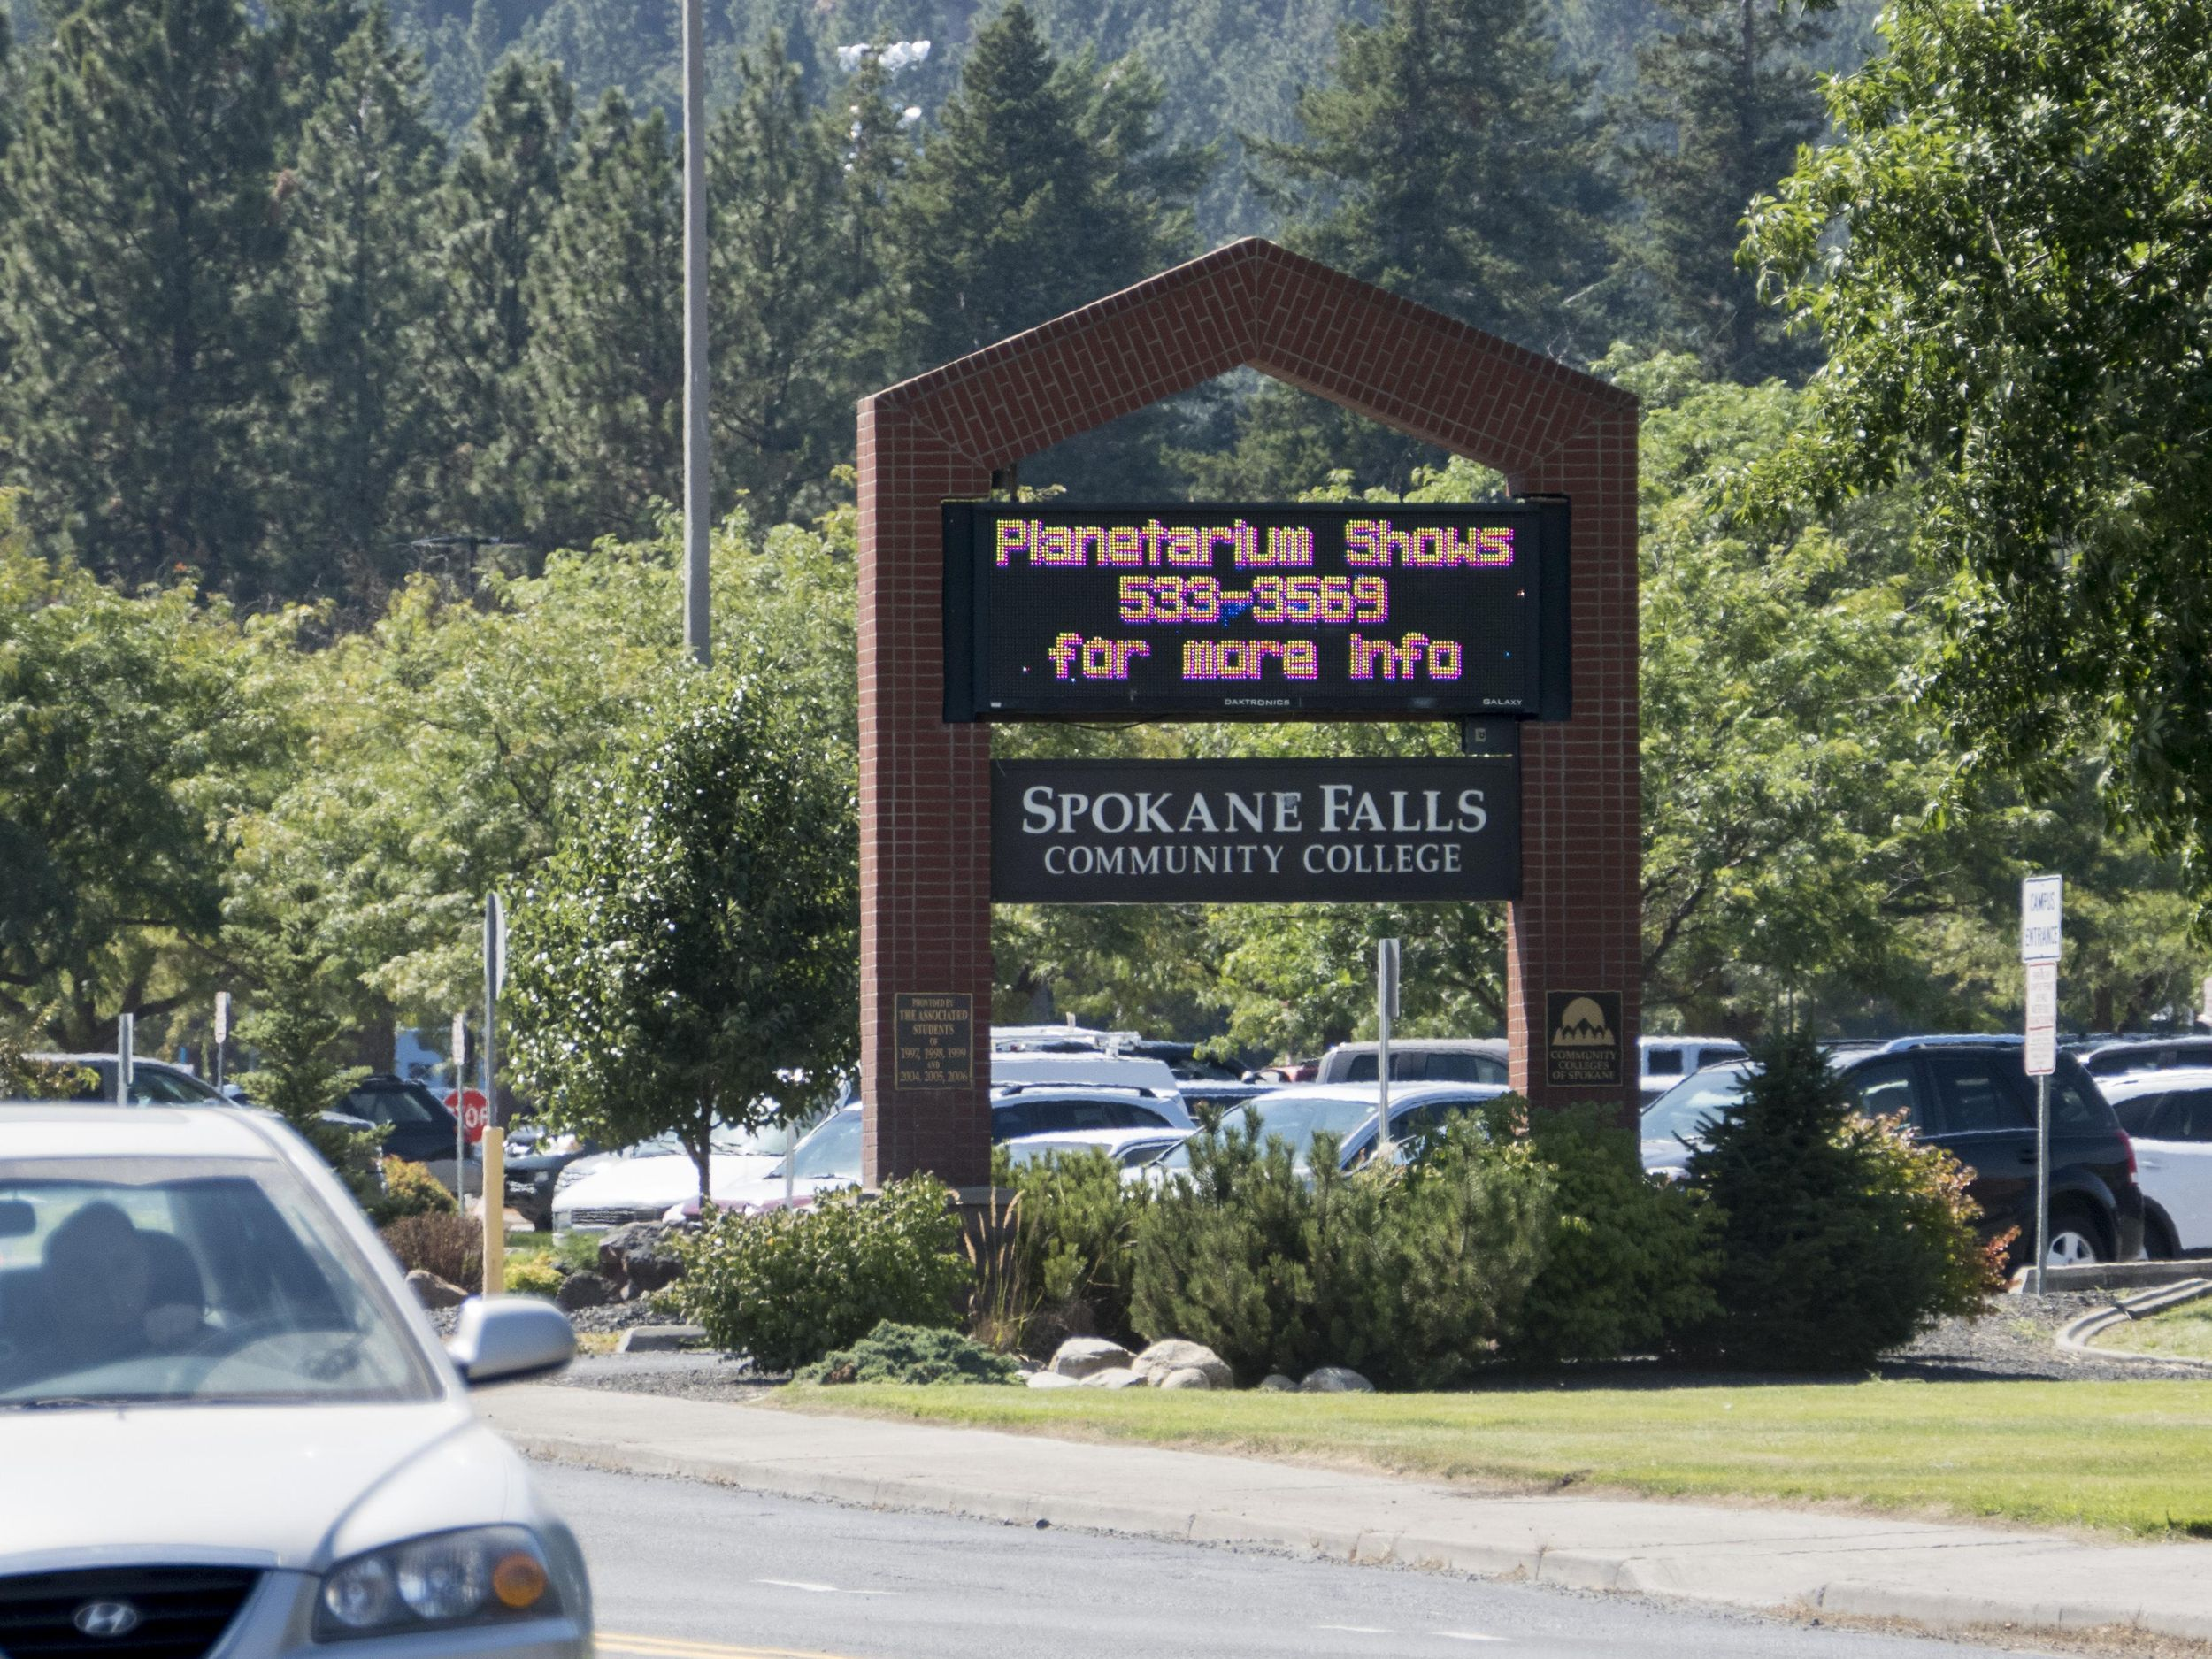 Achievements Spokane Falls Community College Spring 2019 Honor Roll The Spokesman Review Get in touch with josh potter (@joshpotter45) — 718 answers, 795 likes. spokane falls community college spring